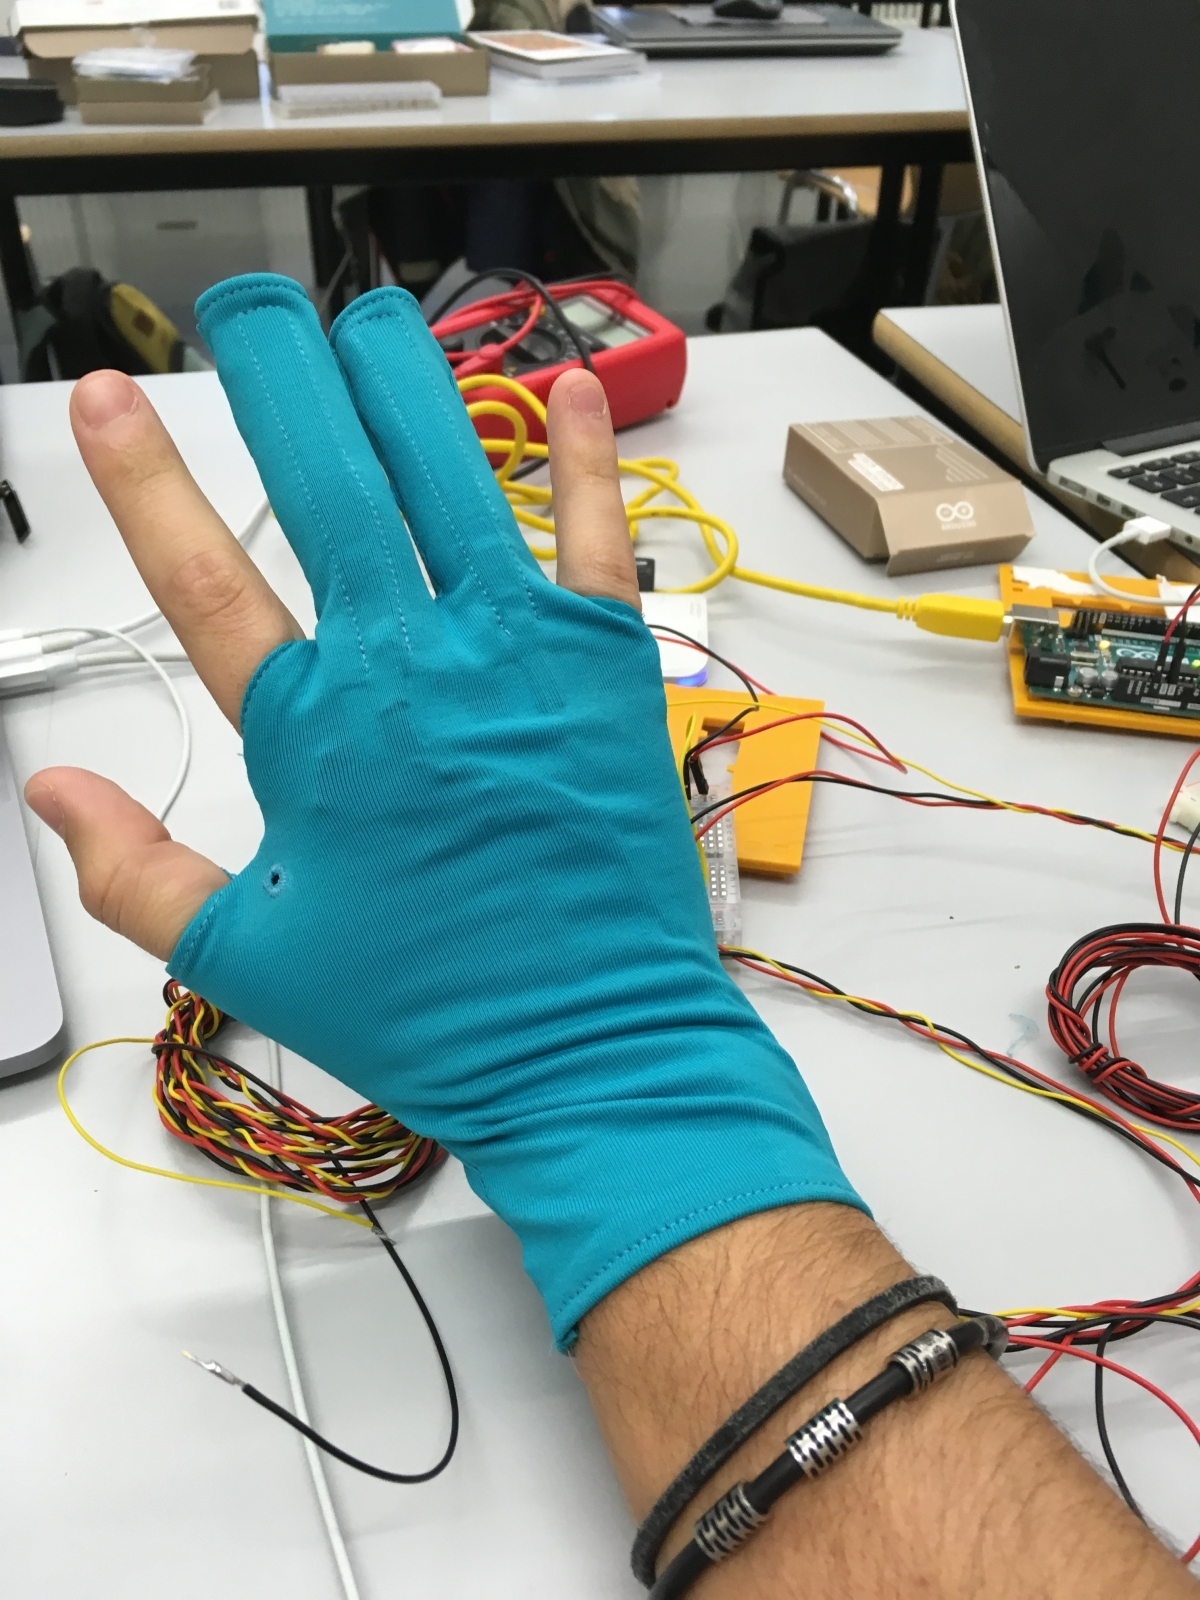 Testing the cables inside the gloves